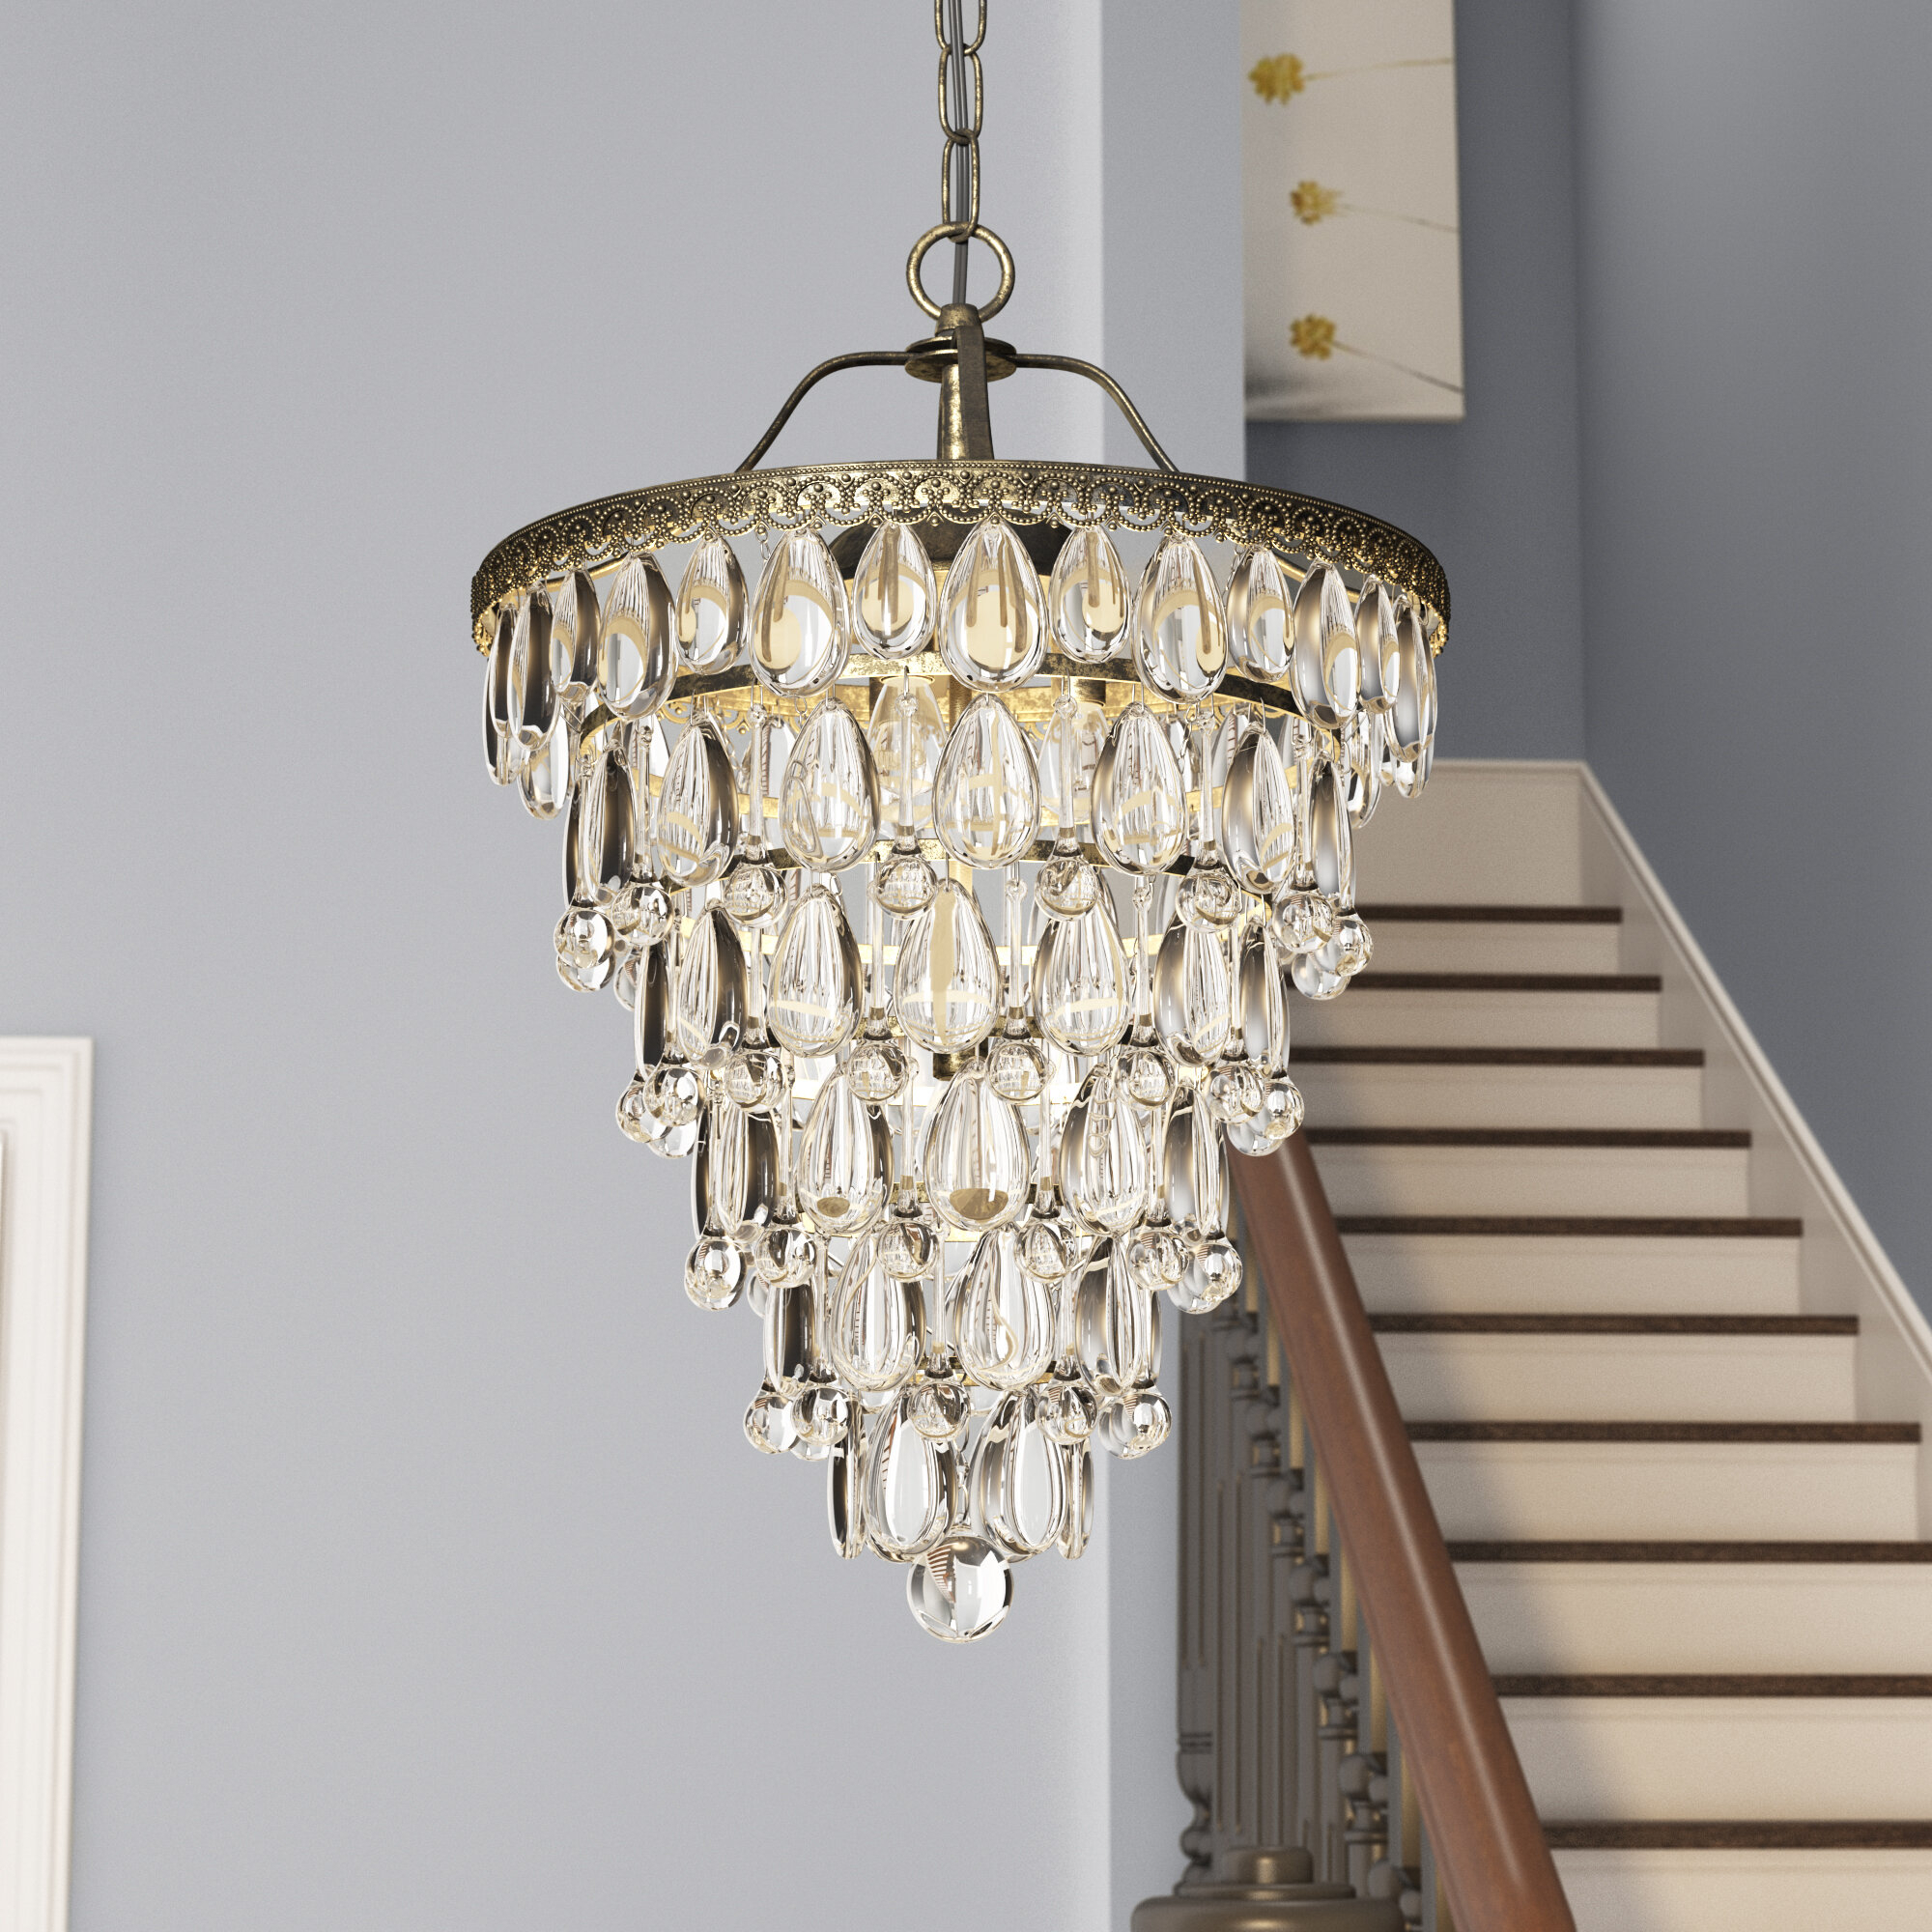 Totnes 4 Light Crystal Chandelier With Von 4 Light Crystal Chandeliers (View 3 of 30)